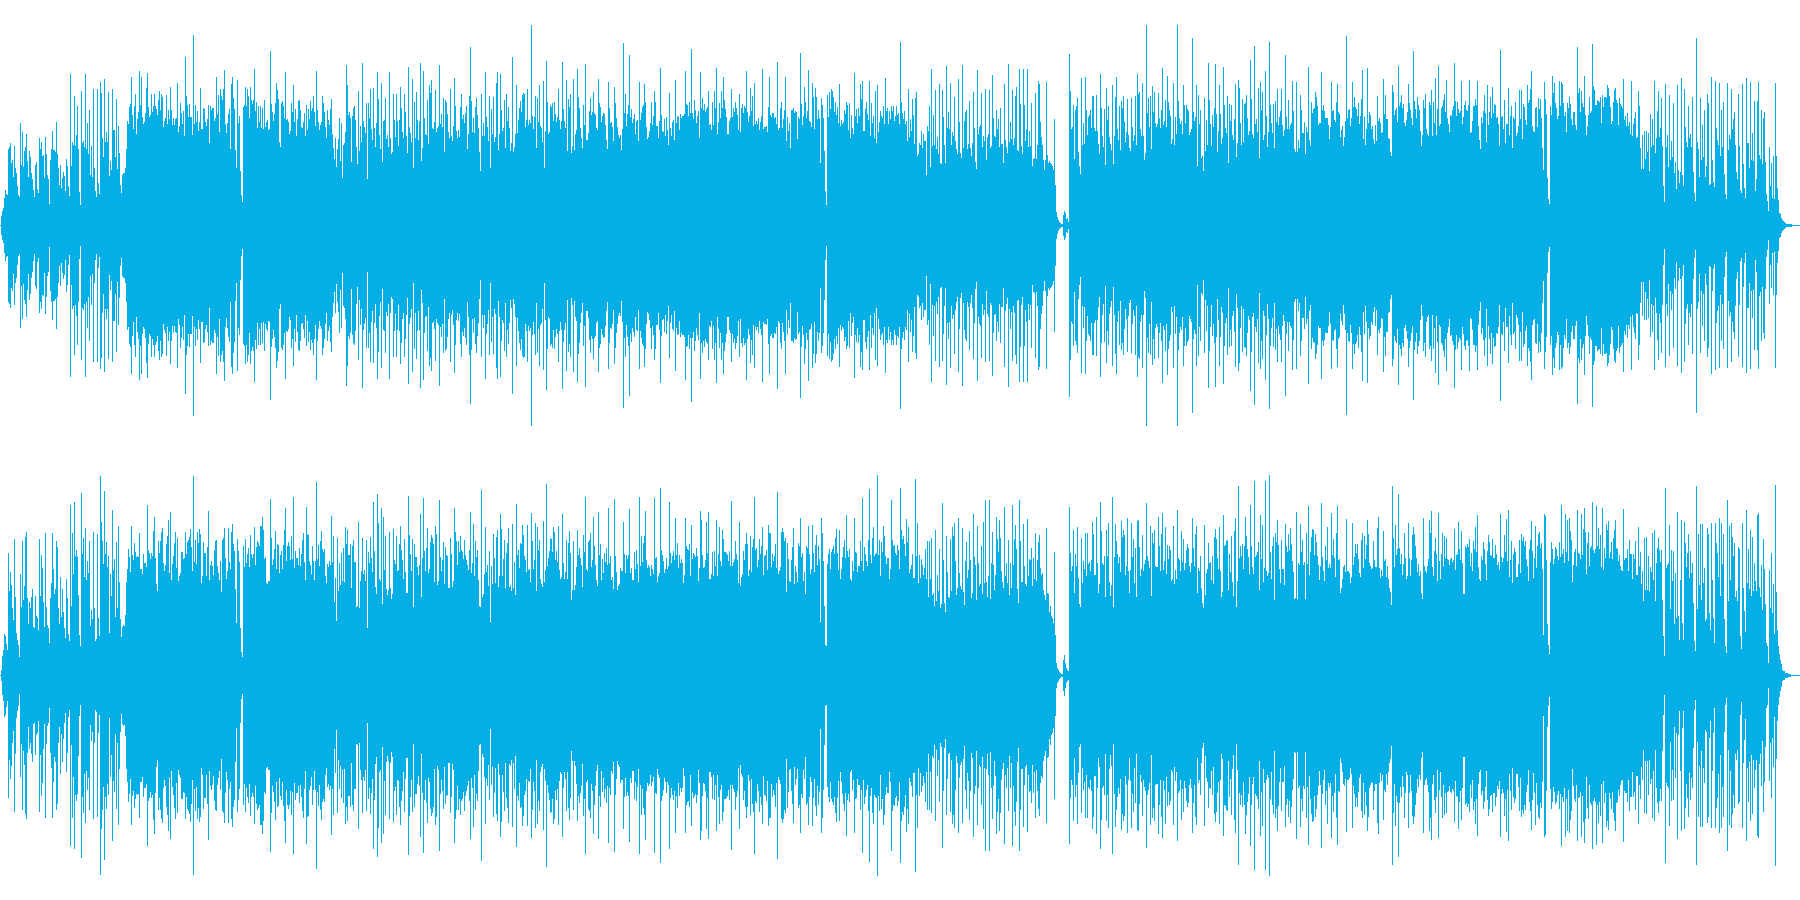 Bright and energetic OP wind performance violin's reproduced waveform